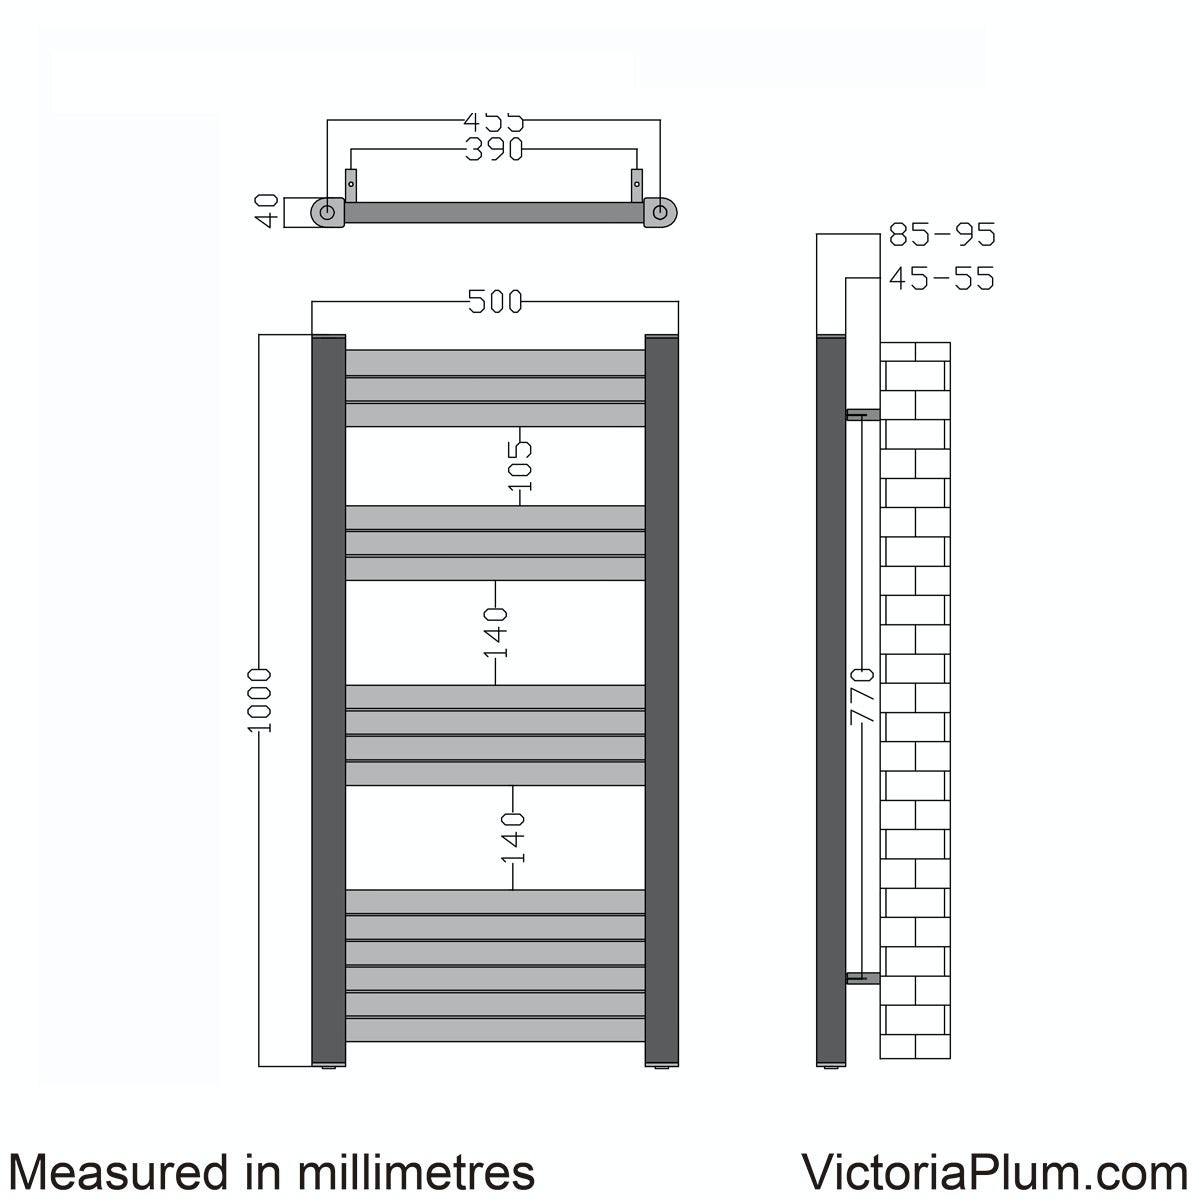 Dimensions for Mode Carter heated towel rail 1000 x 500